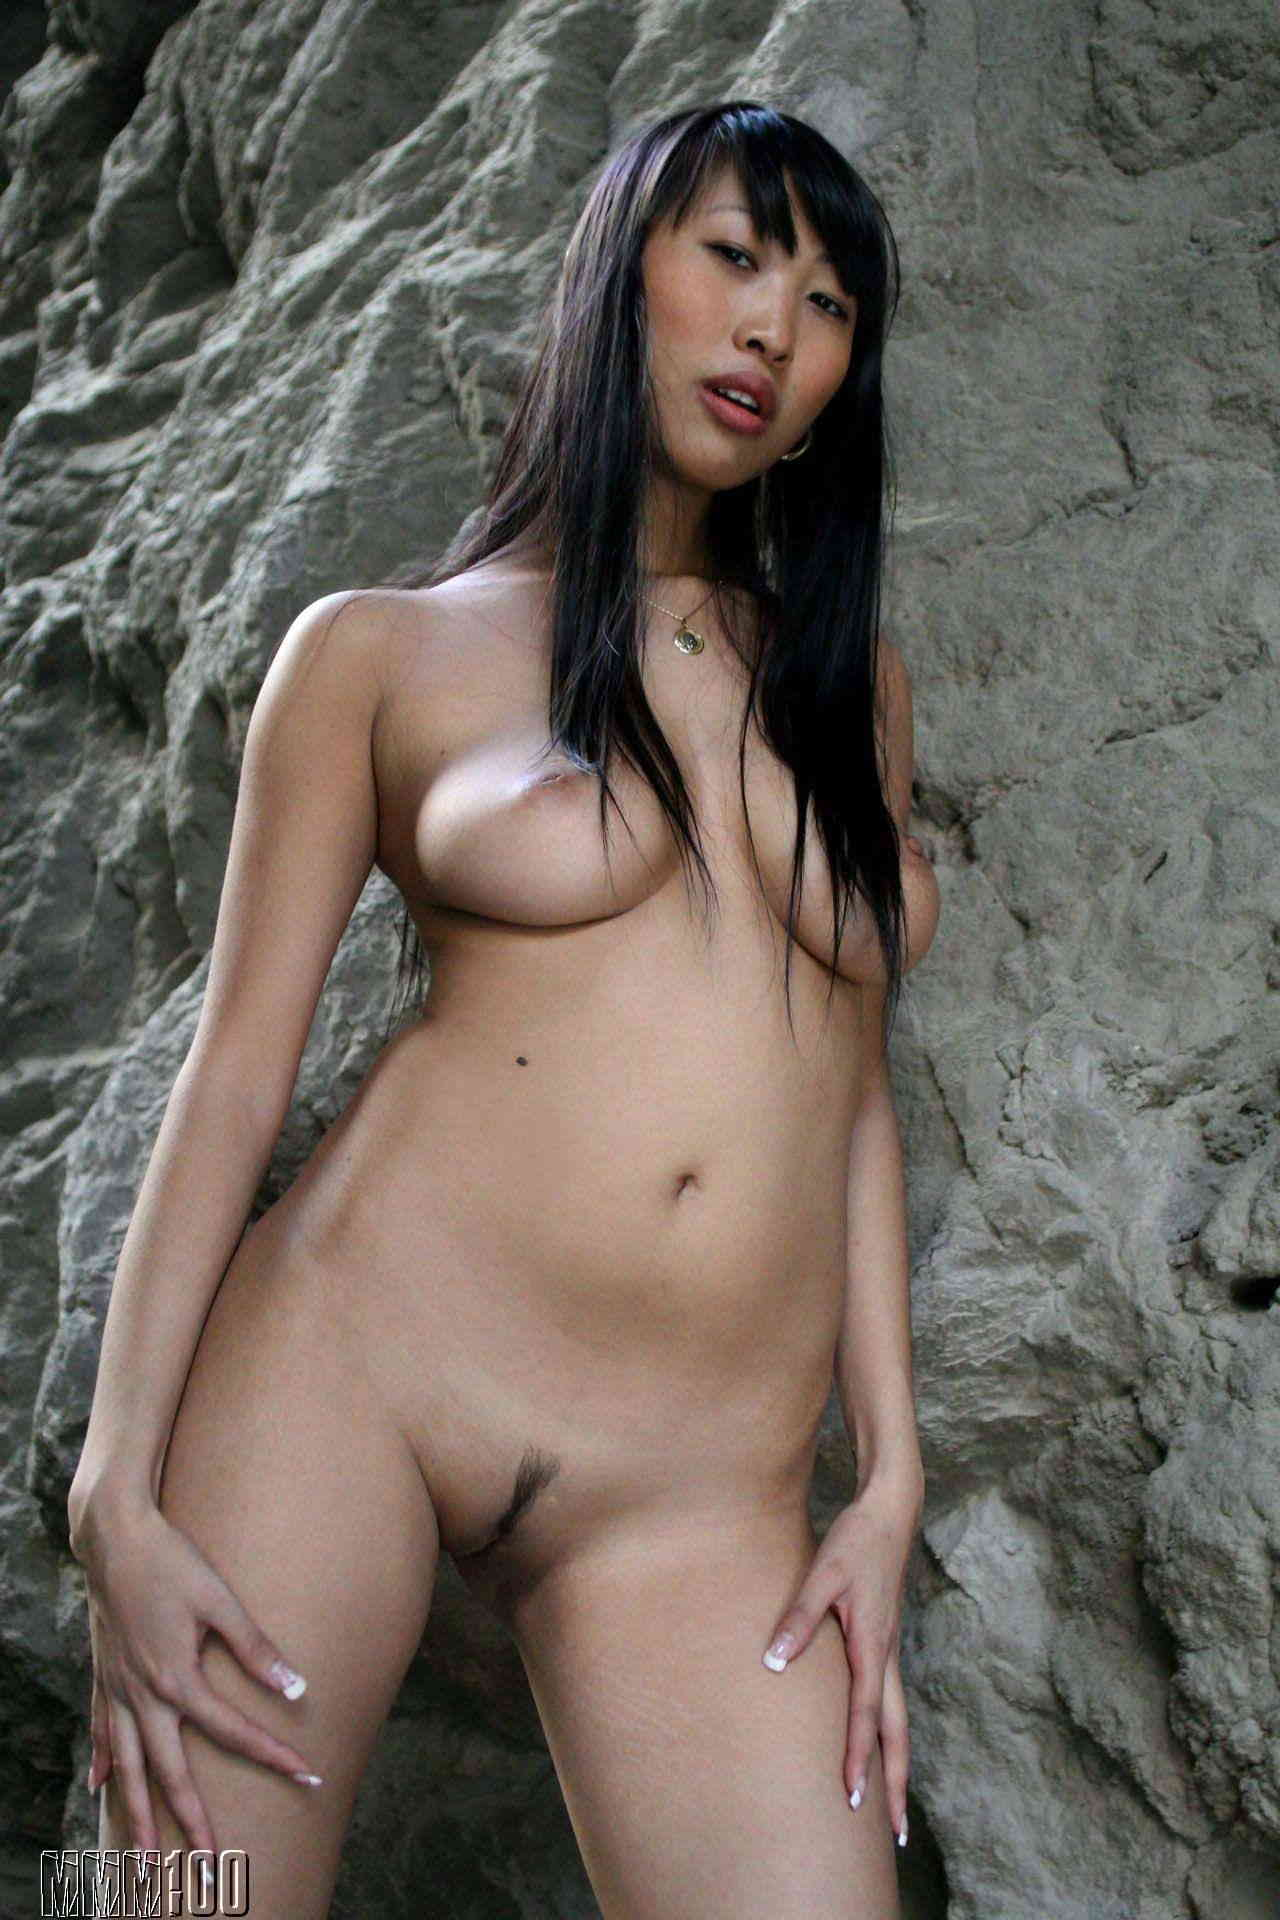 image Sharon lee getting naked on camera for the first time ever